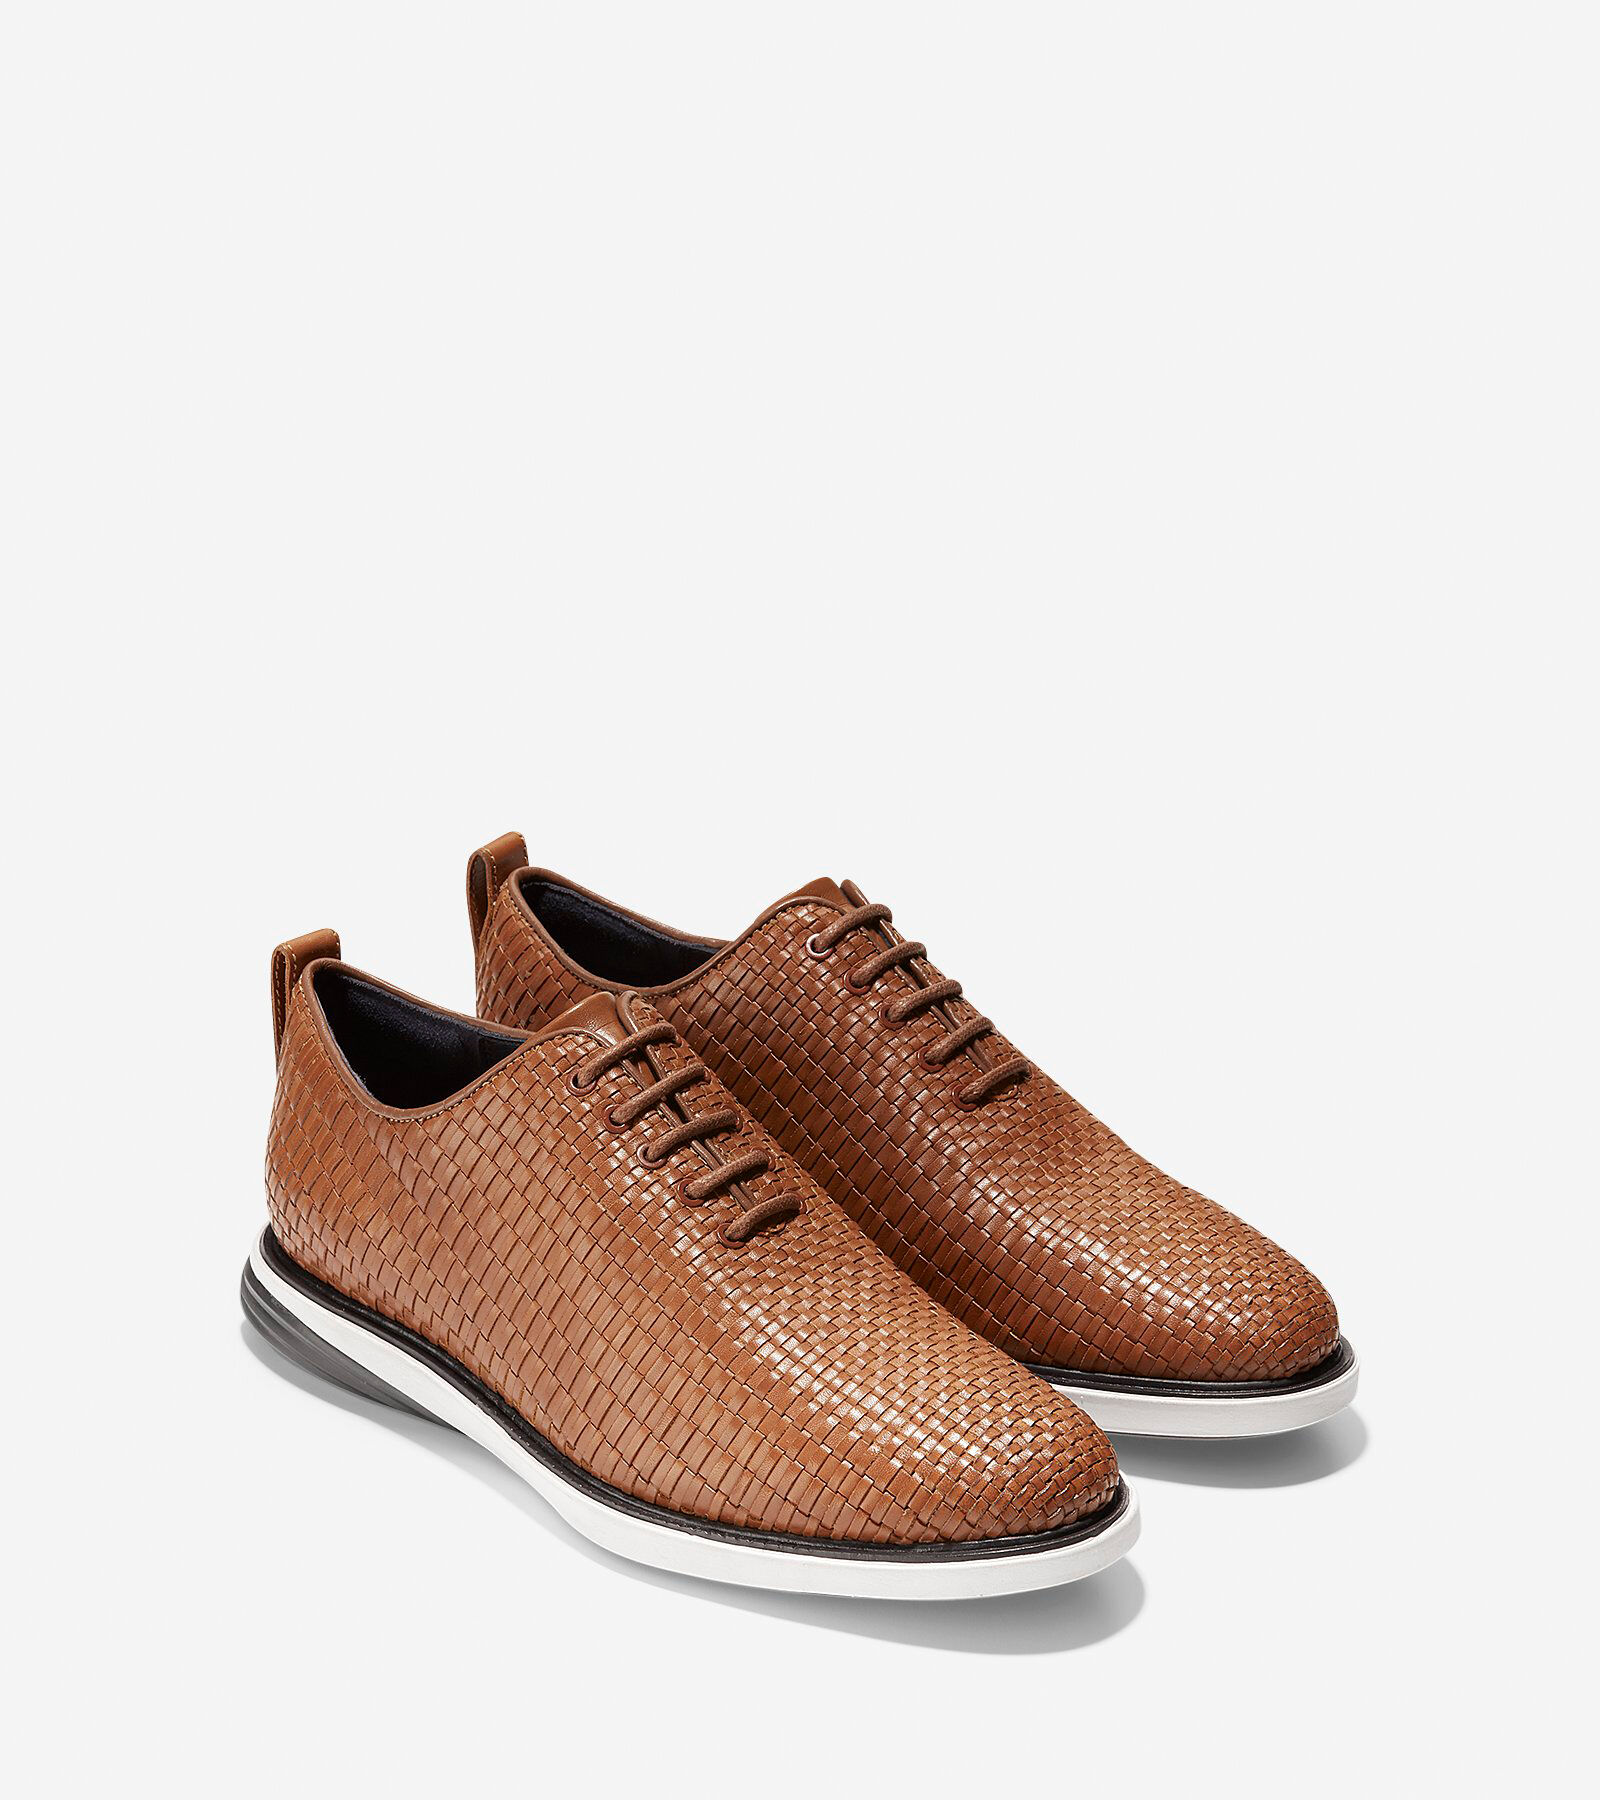 ... Men's GrandEvølution Woven Oxford; Men's GrandEvølution Woven Oxford. # colehaan